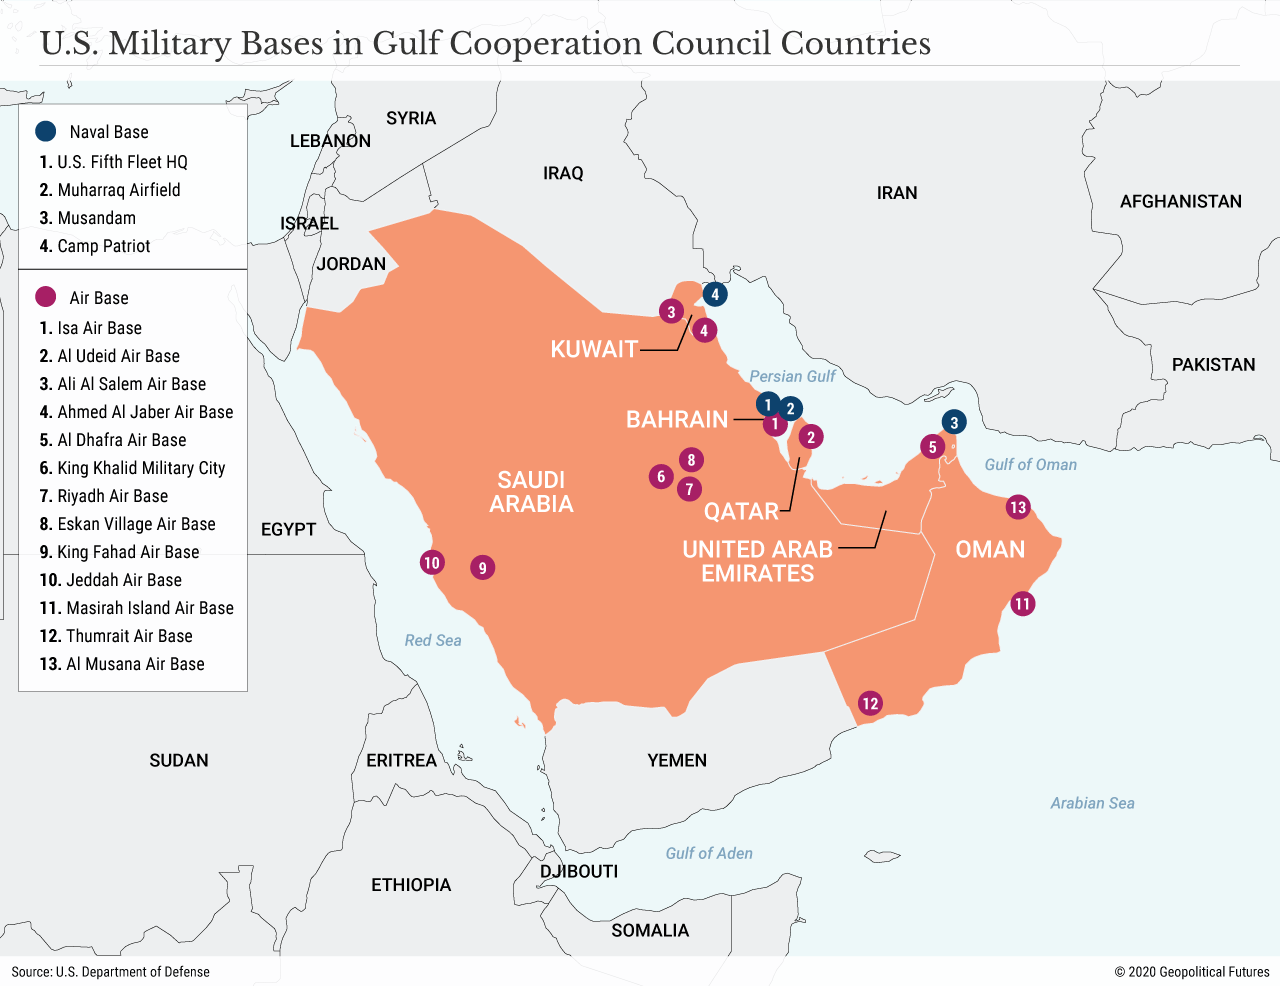 U.S. Military Bases in Gulf Cooperation Council Countries